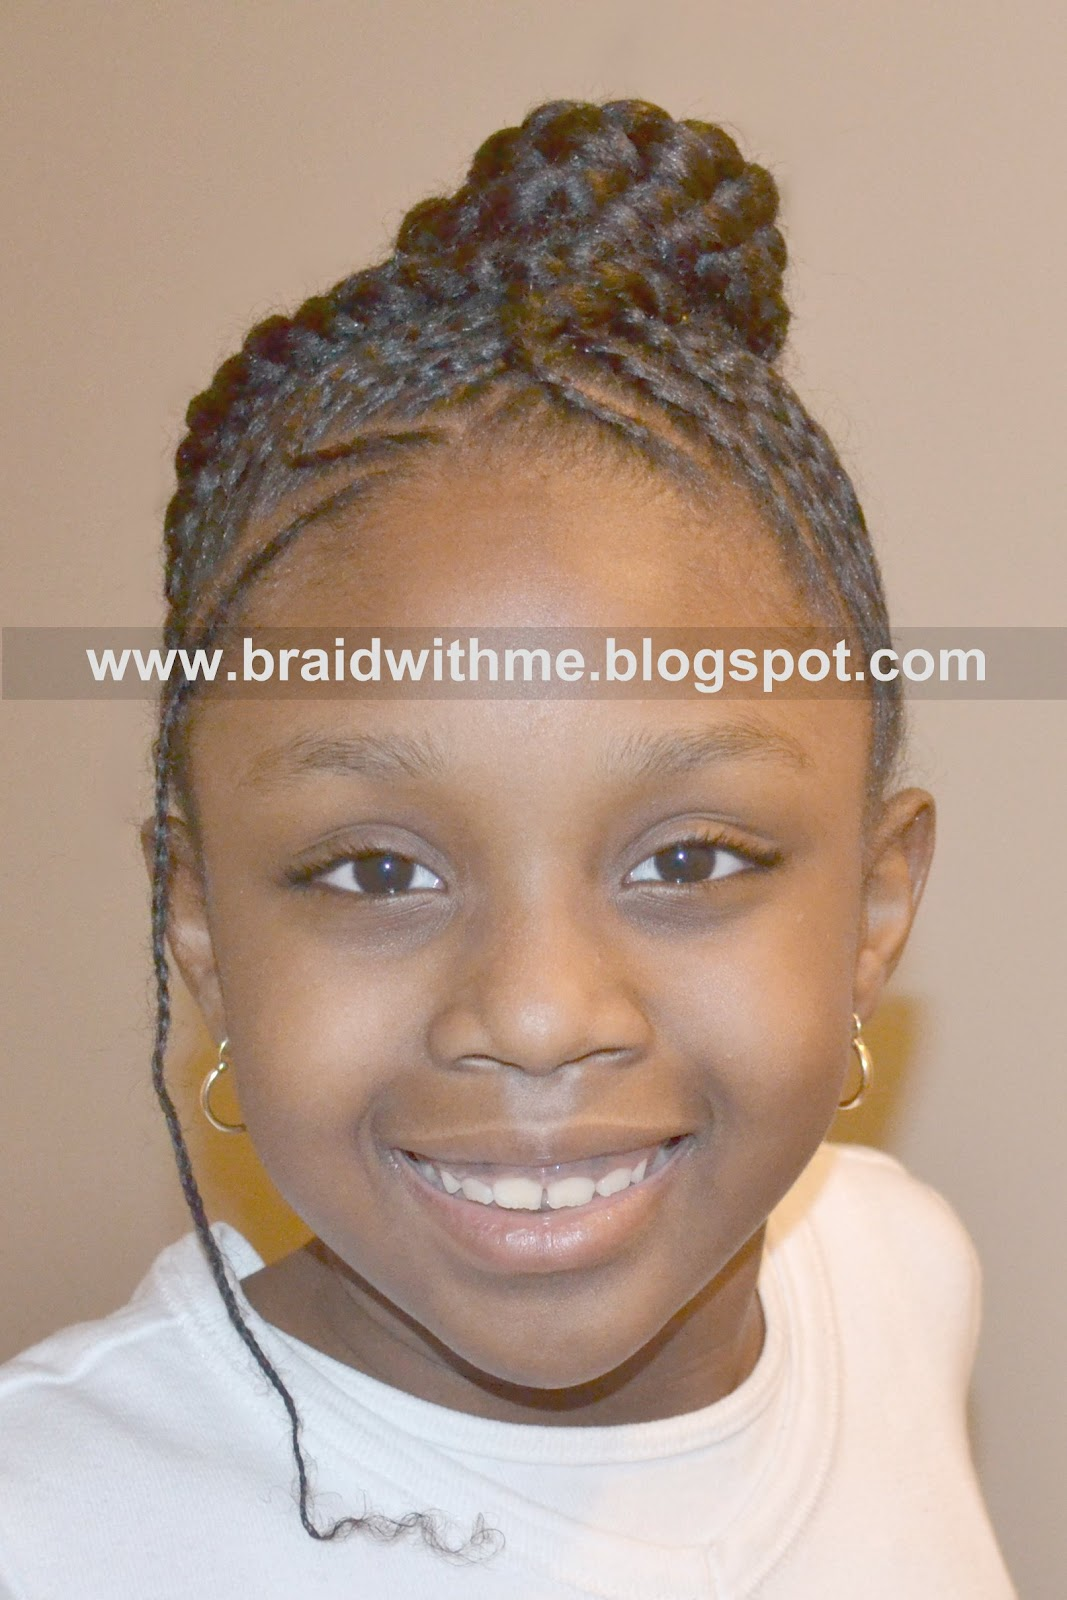 Braided amp Protected  Protective Hair Style on Childs Natural Hair. 1067 x 1600.Black Hairstyles Braids Pictures Kids